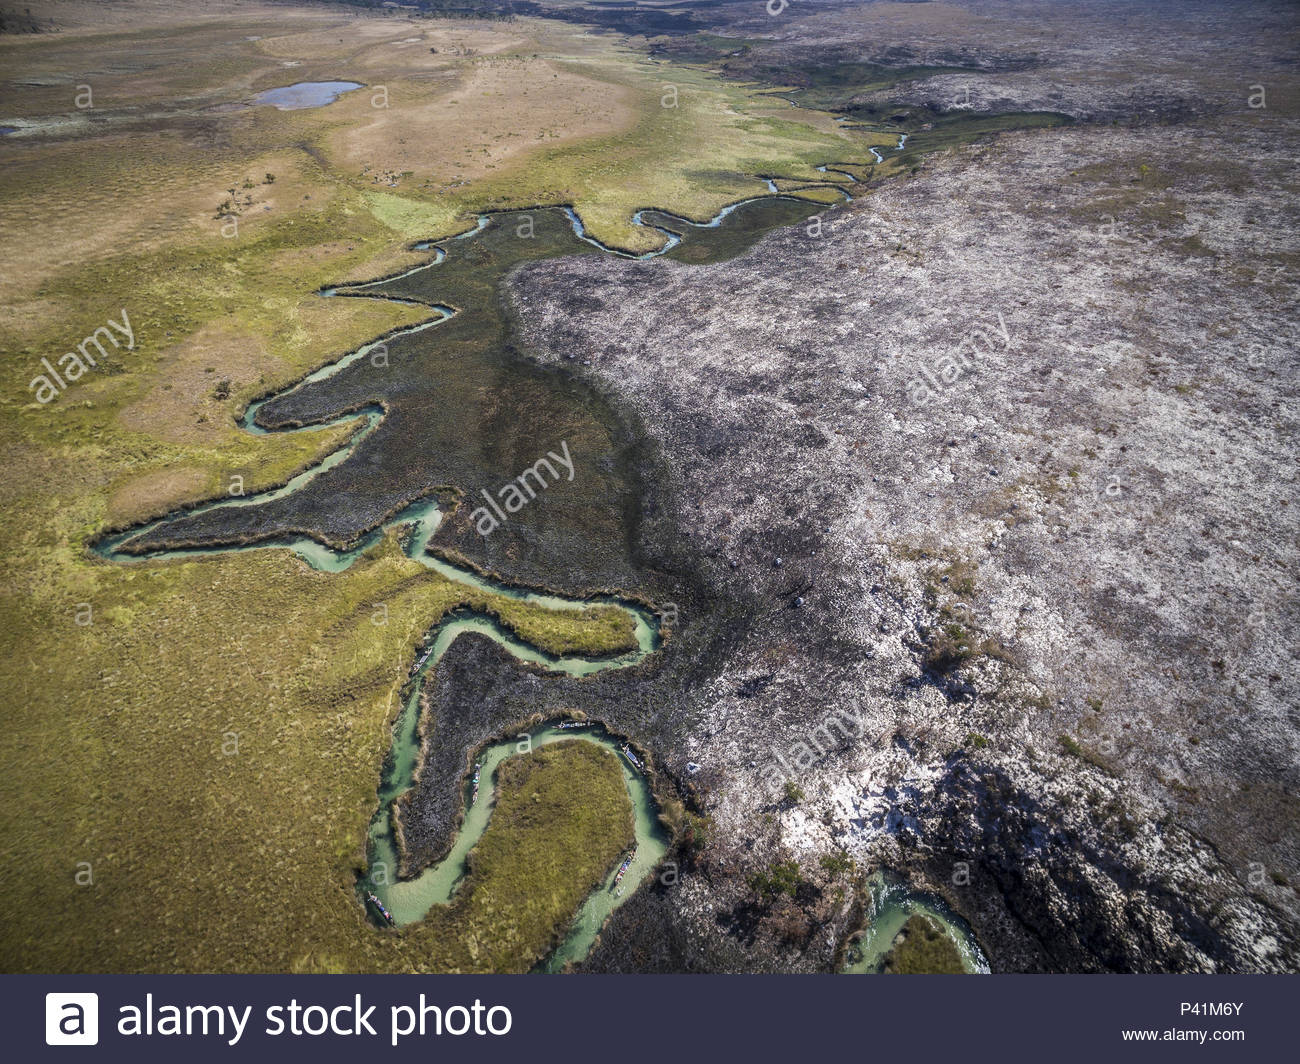 A controlled burn along the Cuito River in the Angolan Highlands. - Stock Image